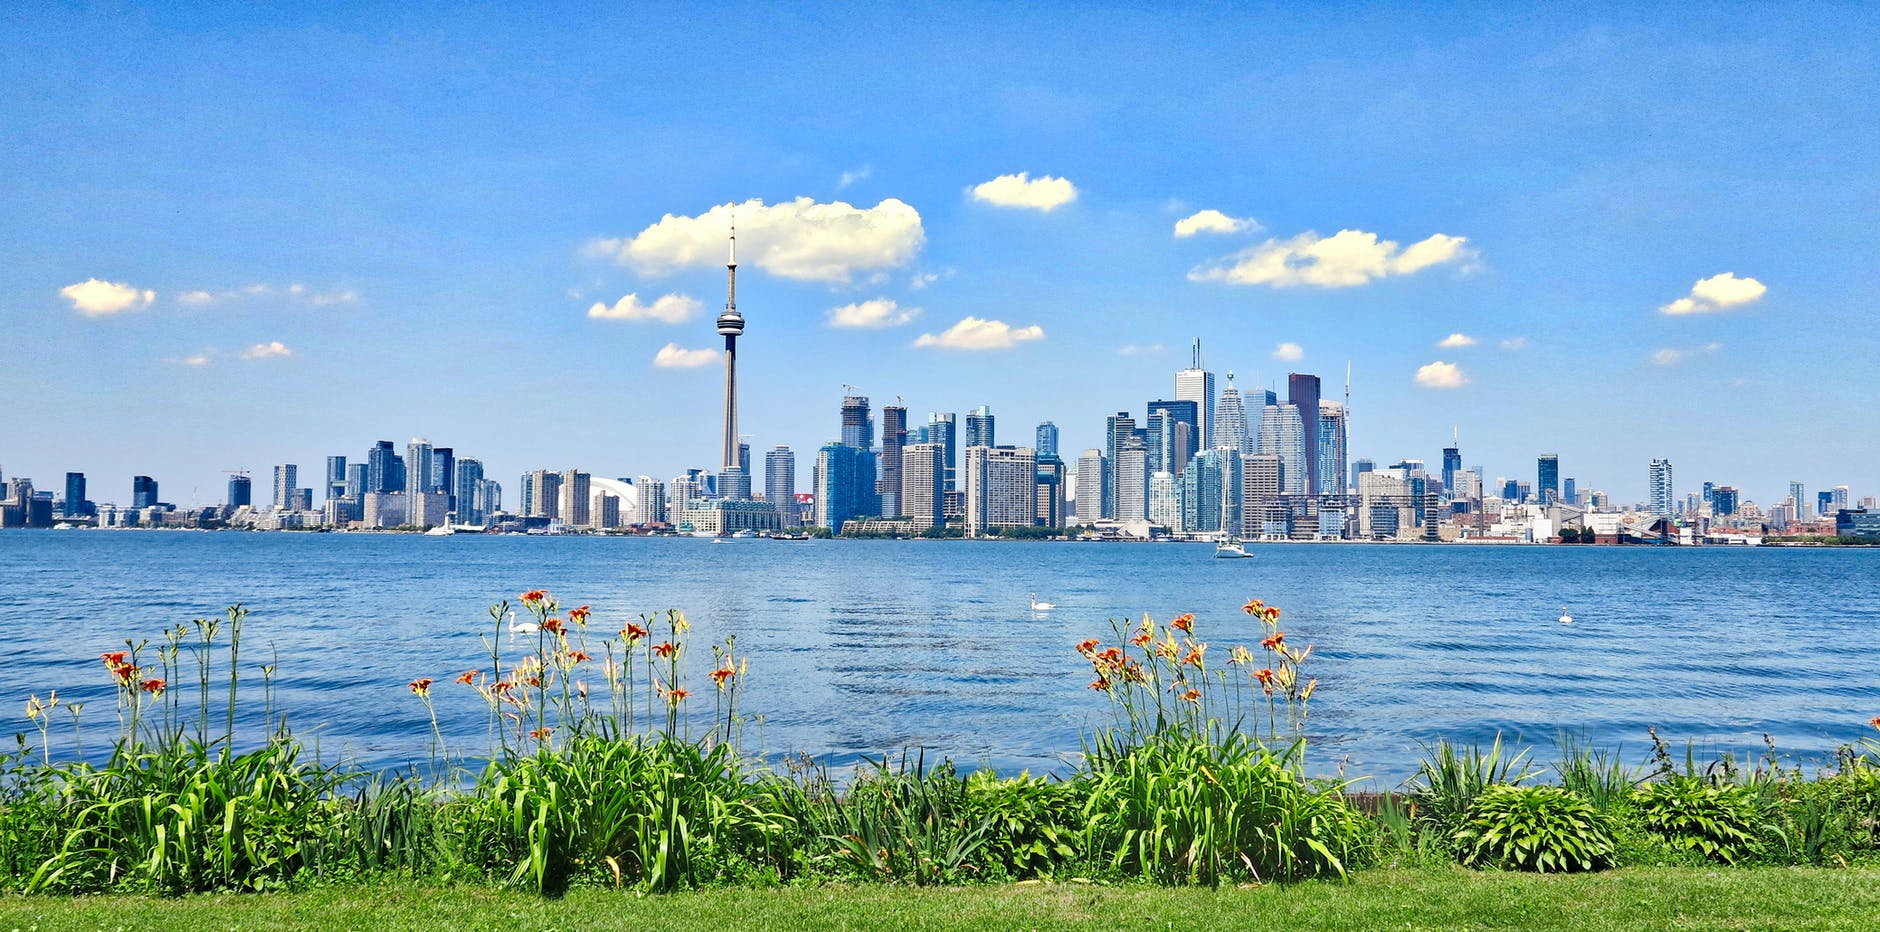 Toronto is one of the most livable cities in Canada